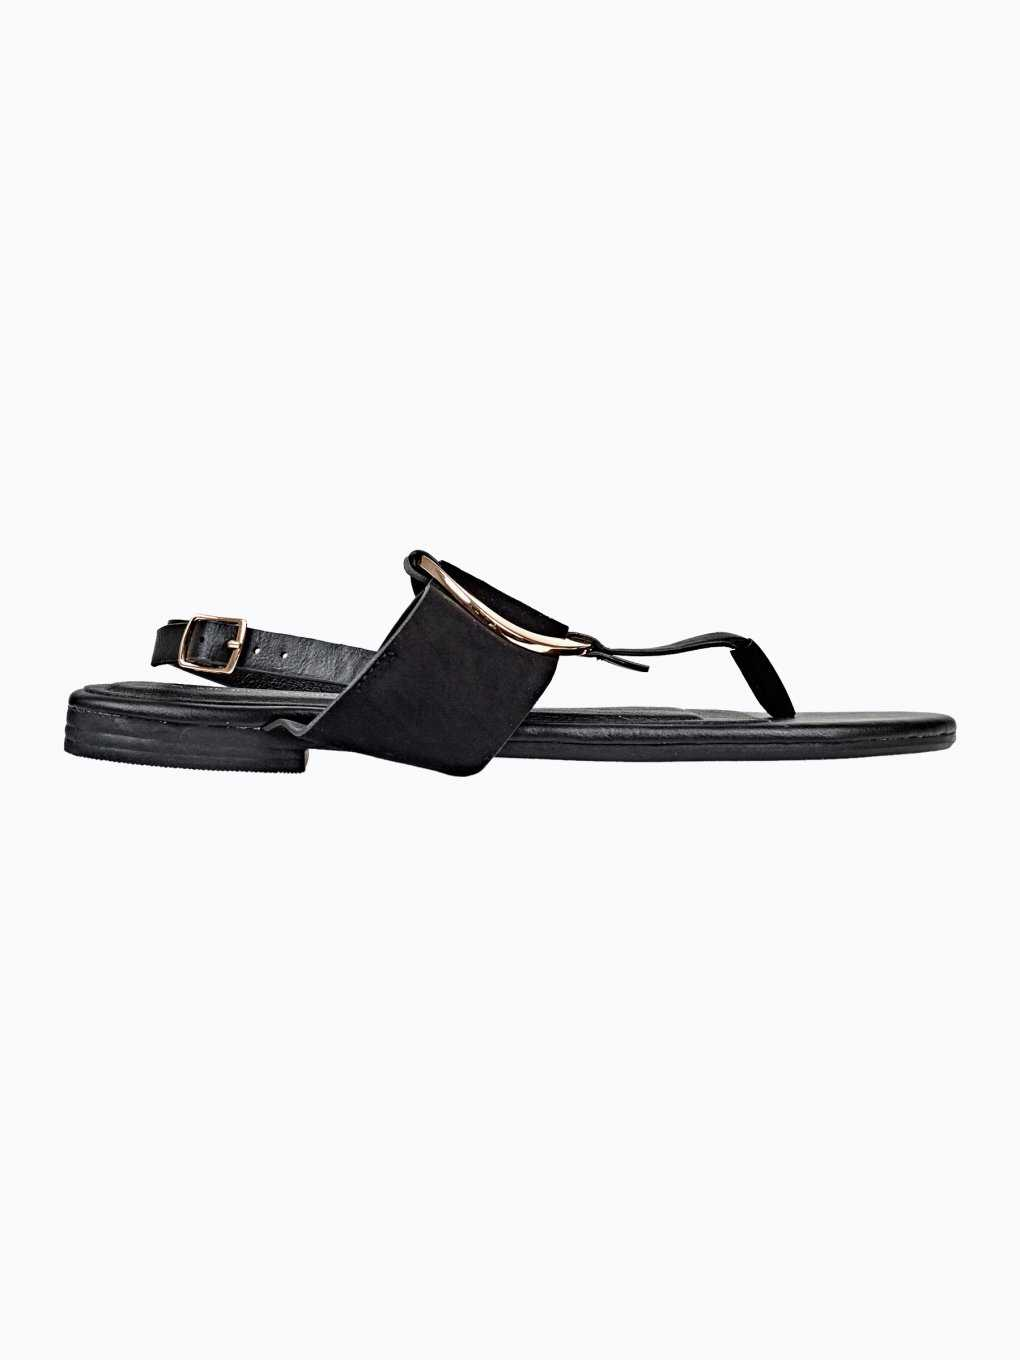 SANDALS WITH METAL RING